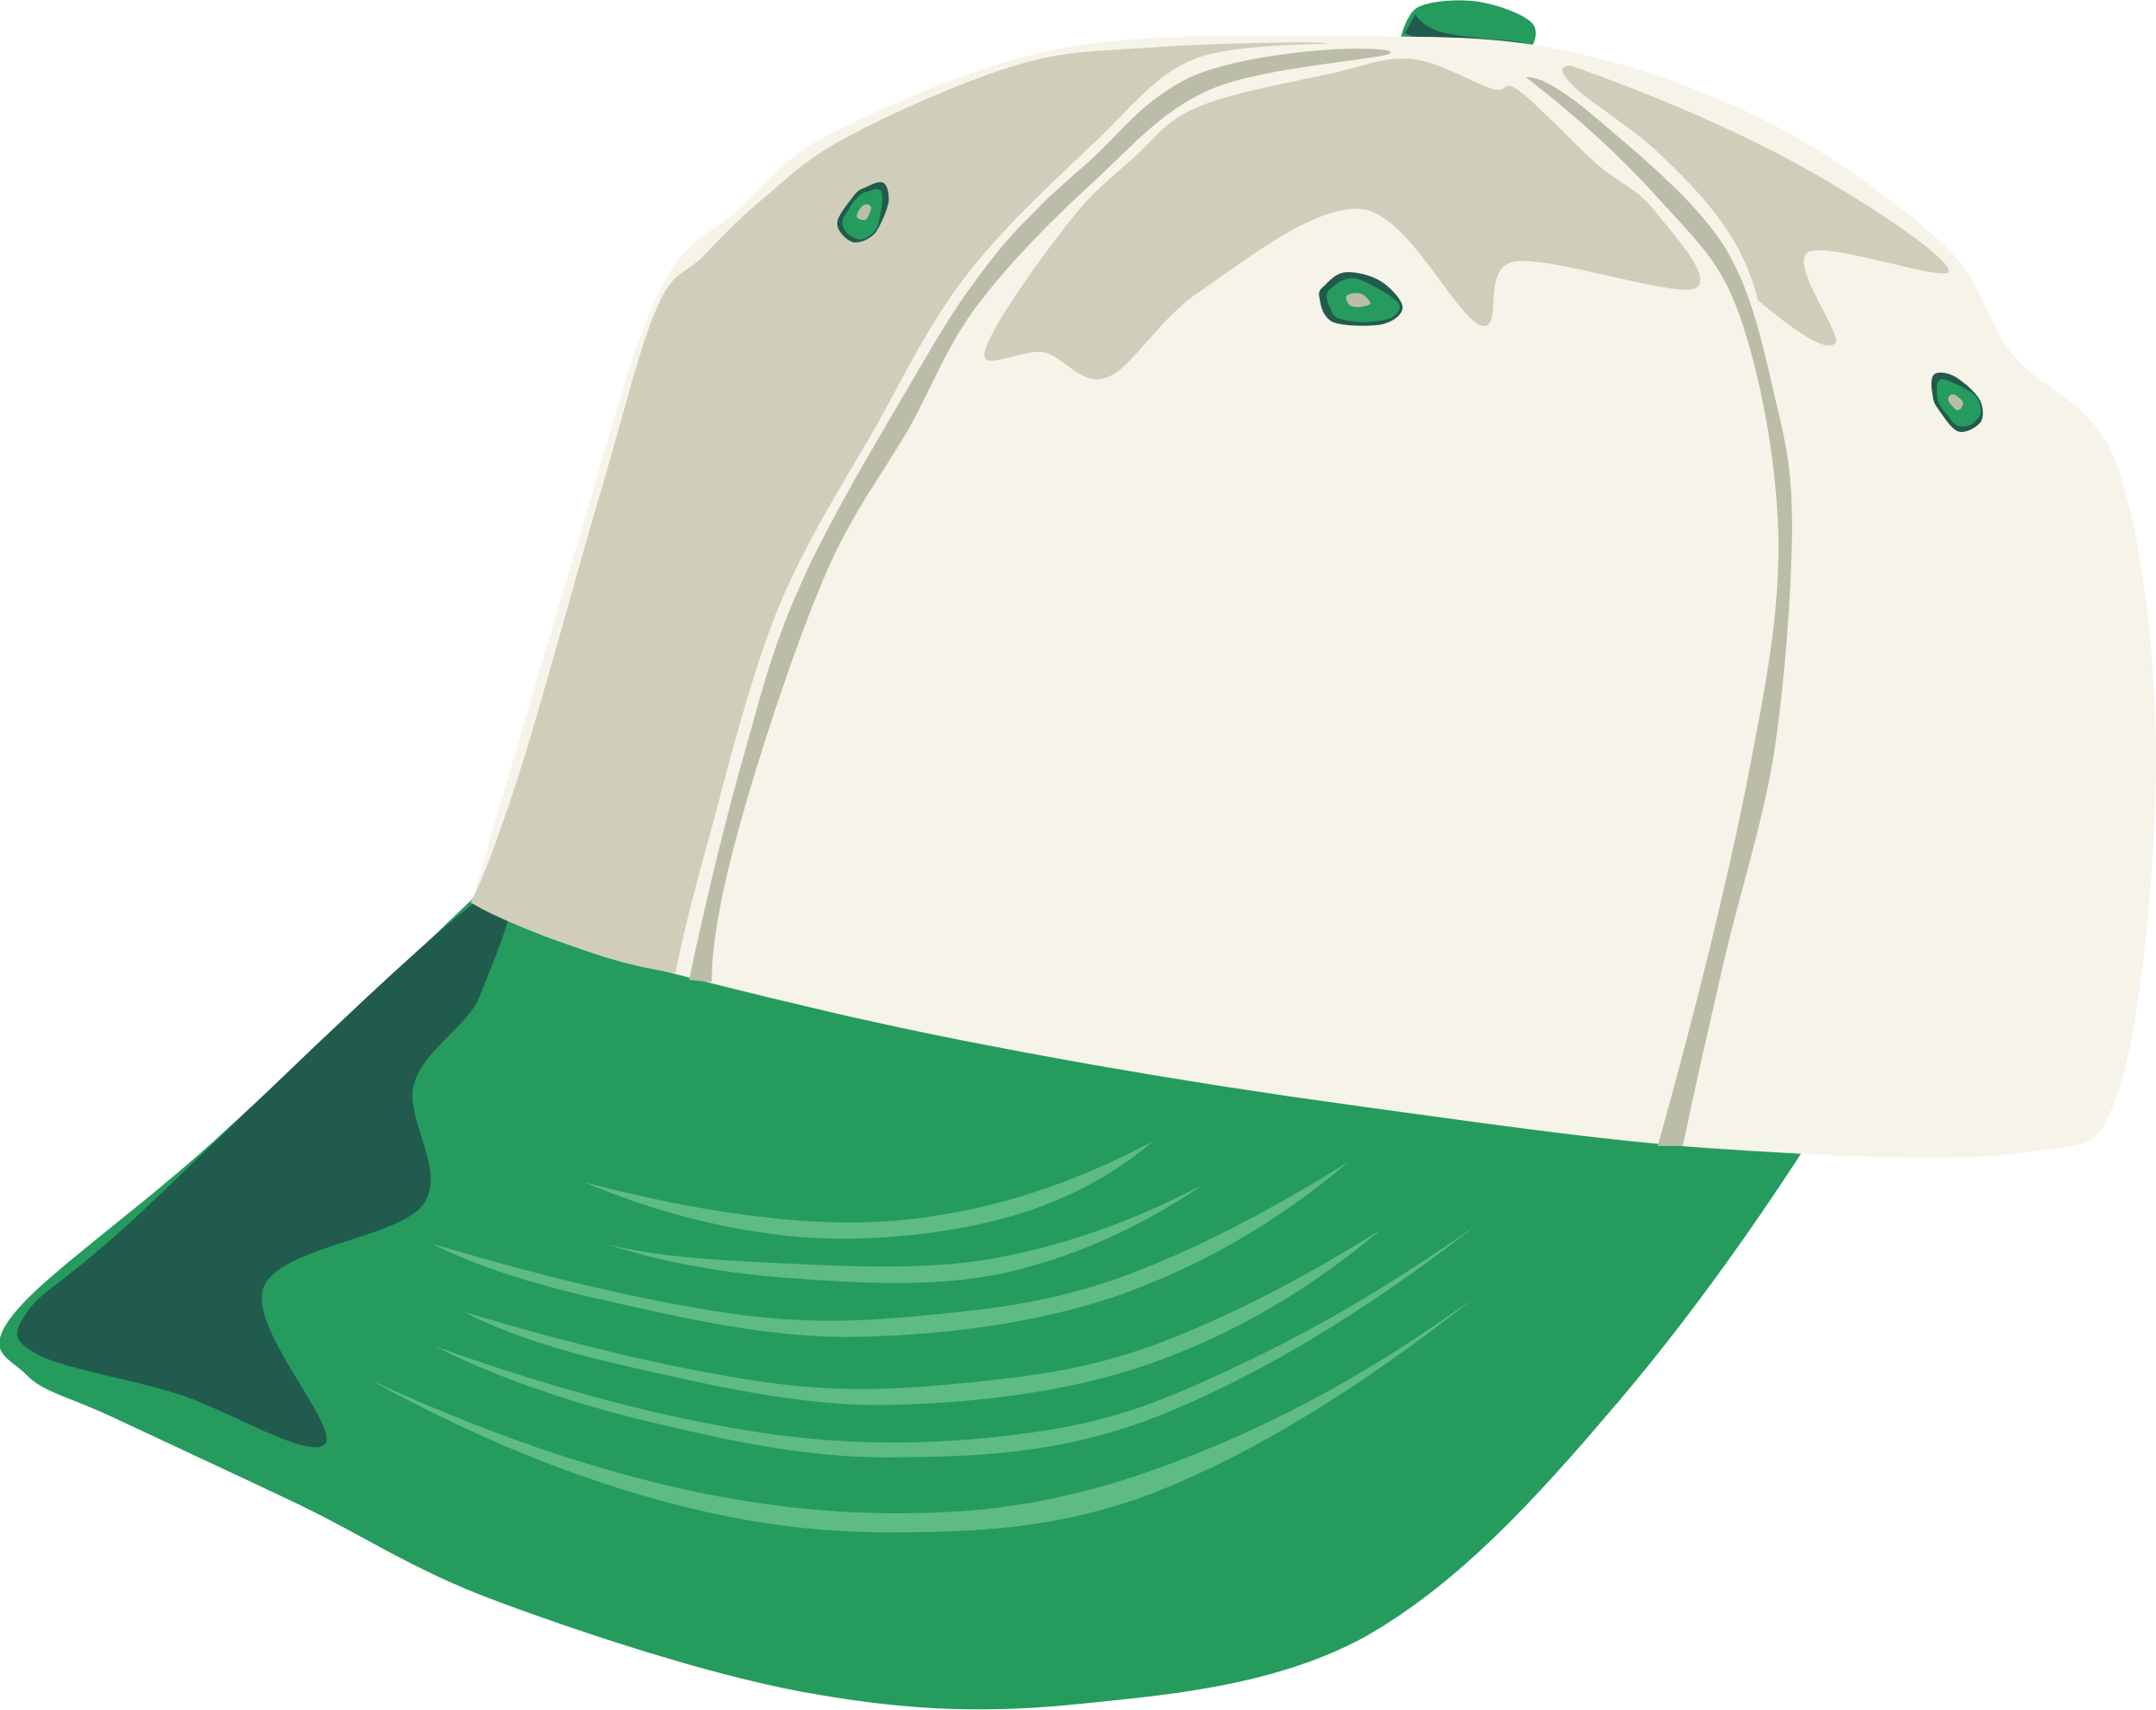 Green baseball cap clipart graphic library stock CARTOON BASEBALL HAT (53+) graphic library stock